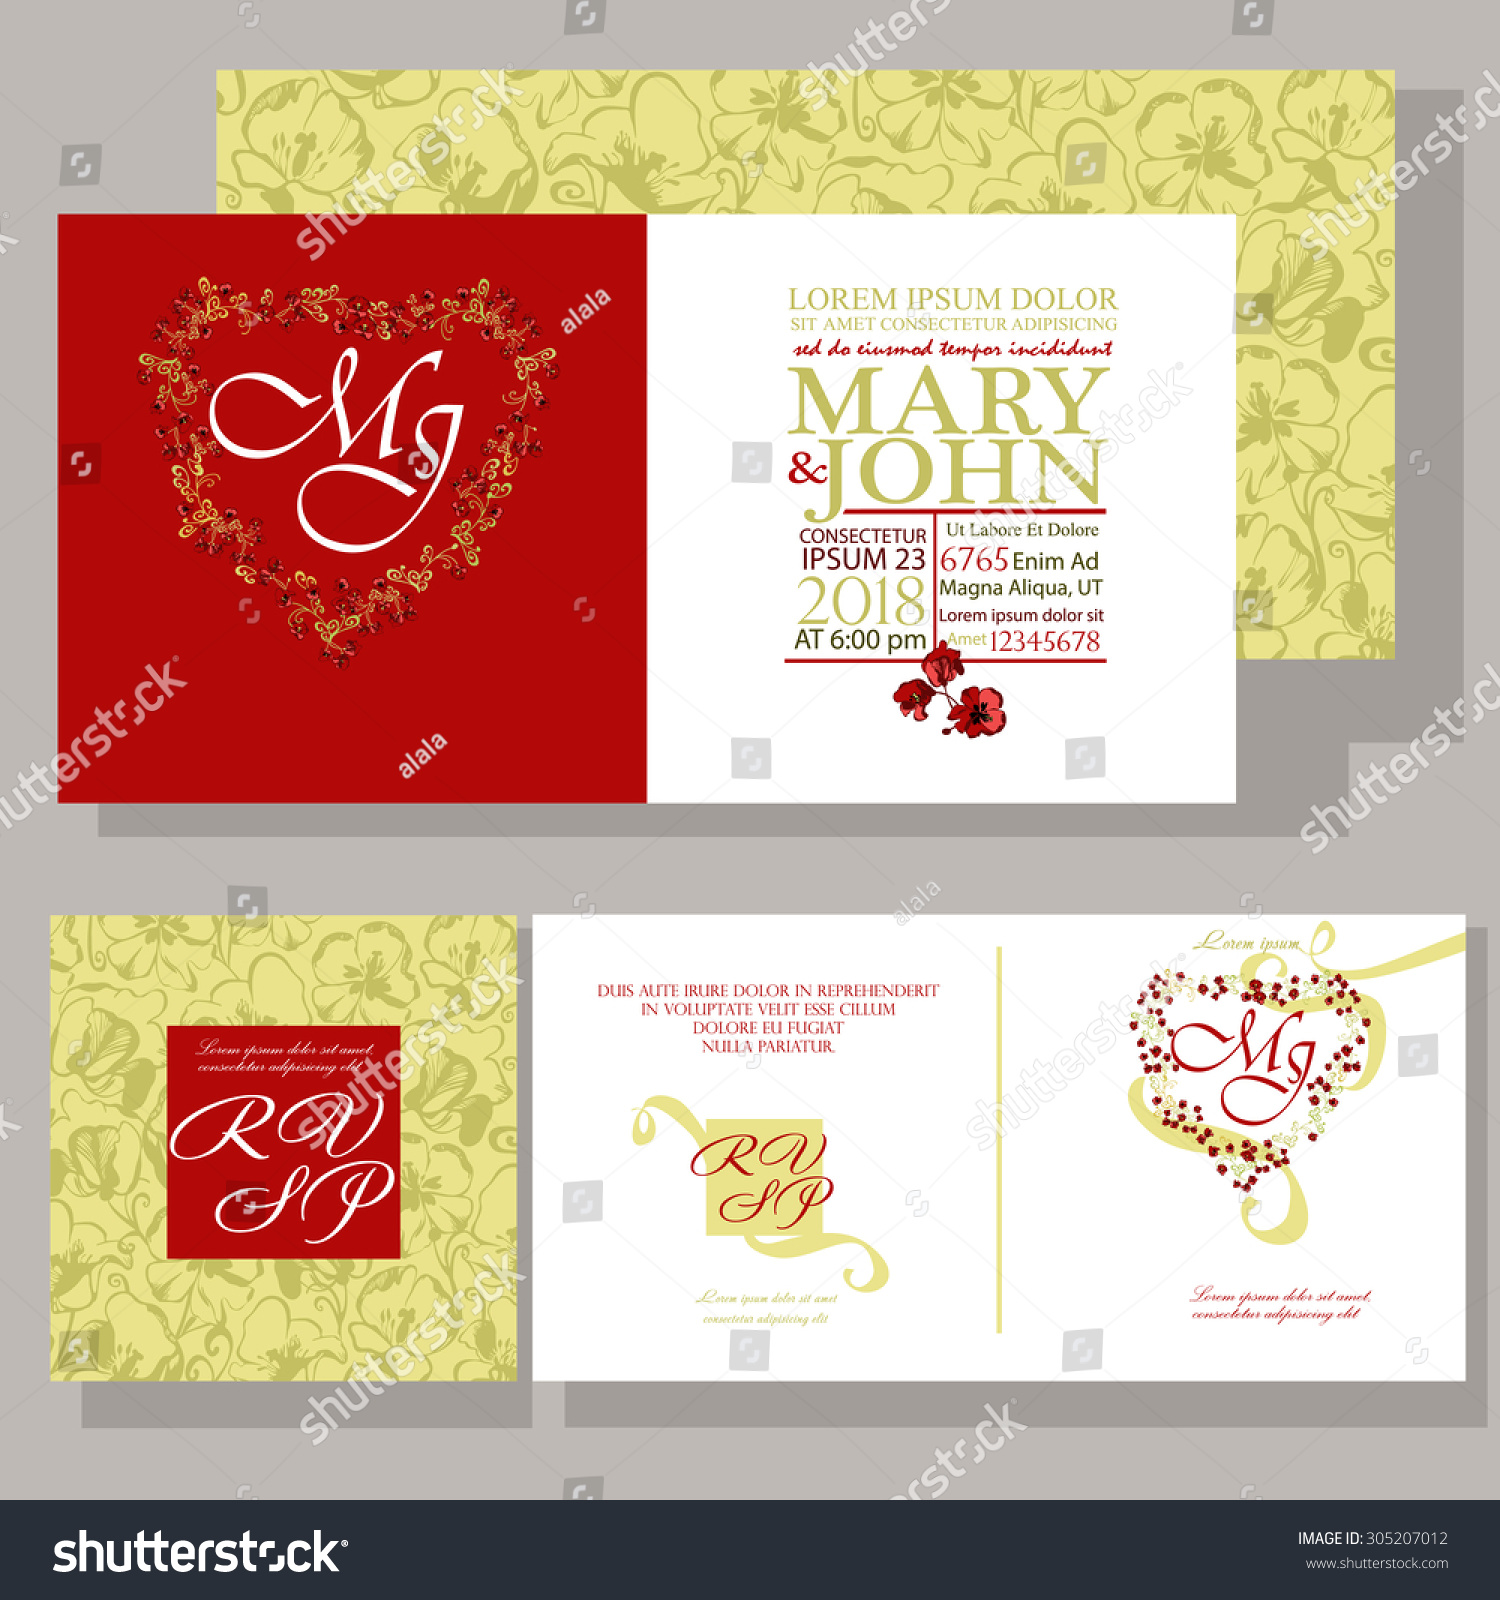 Wedding Invitation Ornamented Bright Red Flowers Stock Vector ...